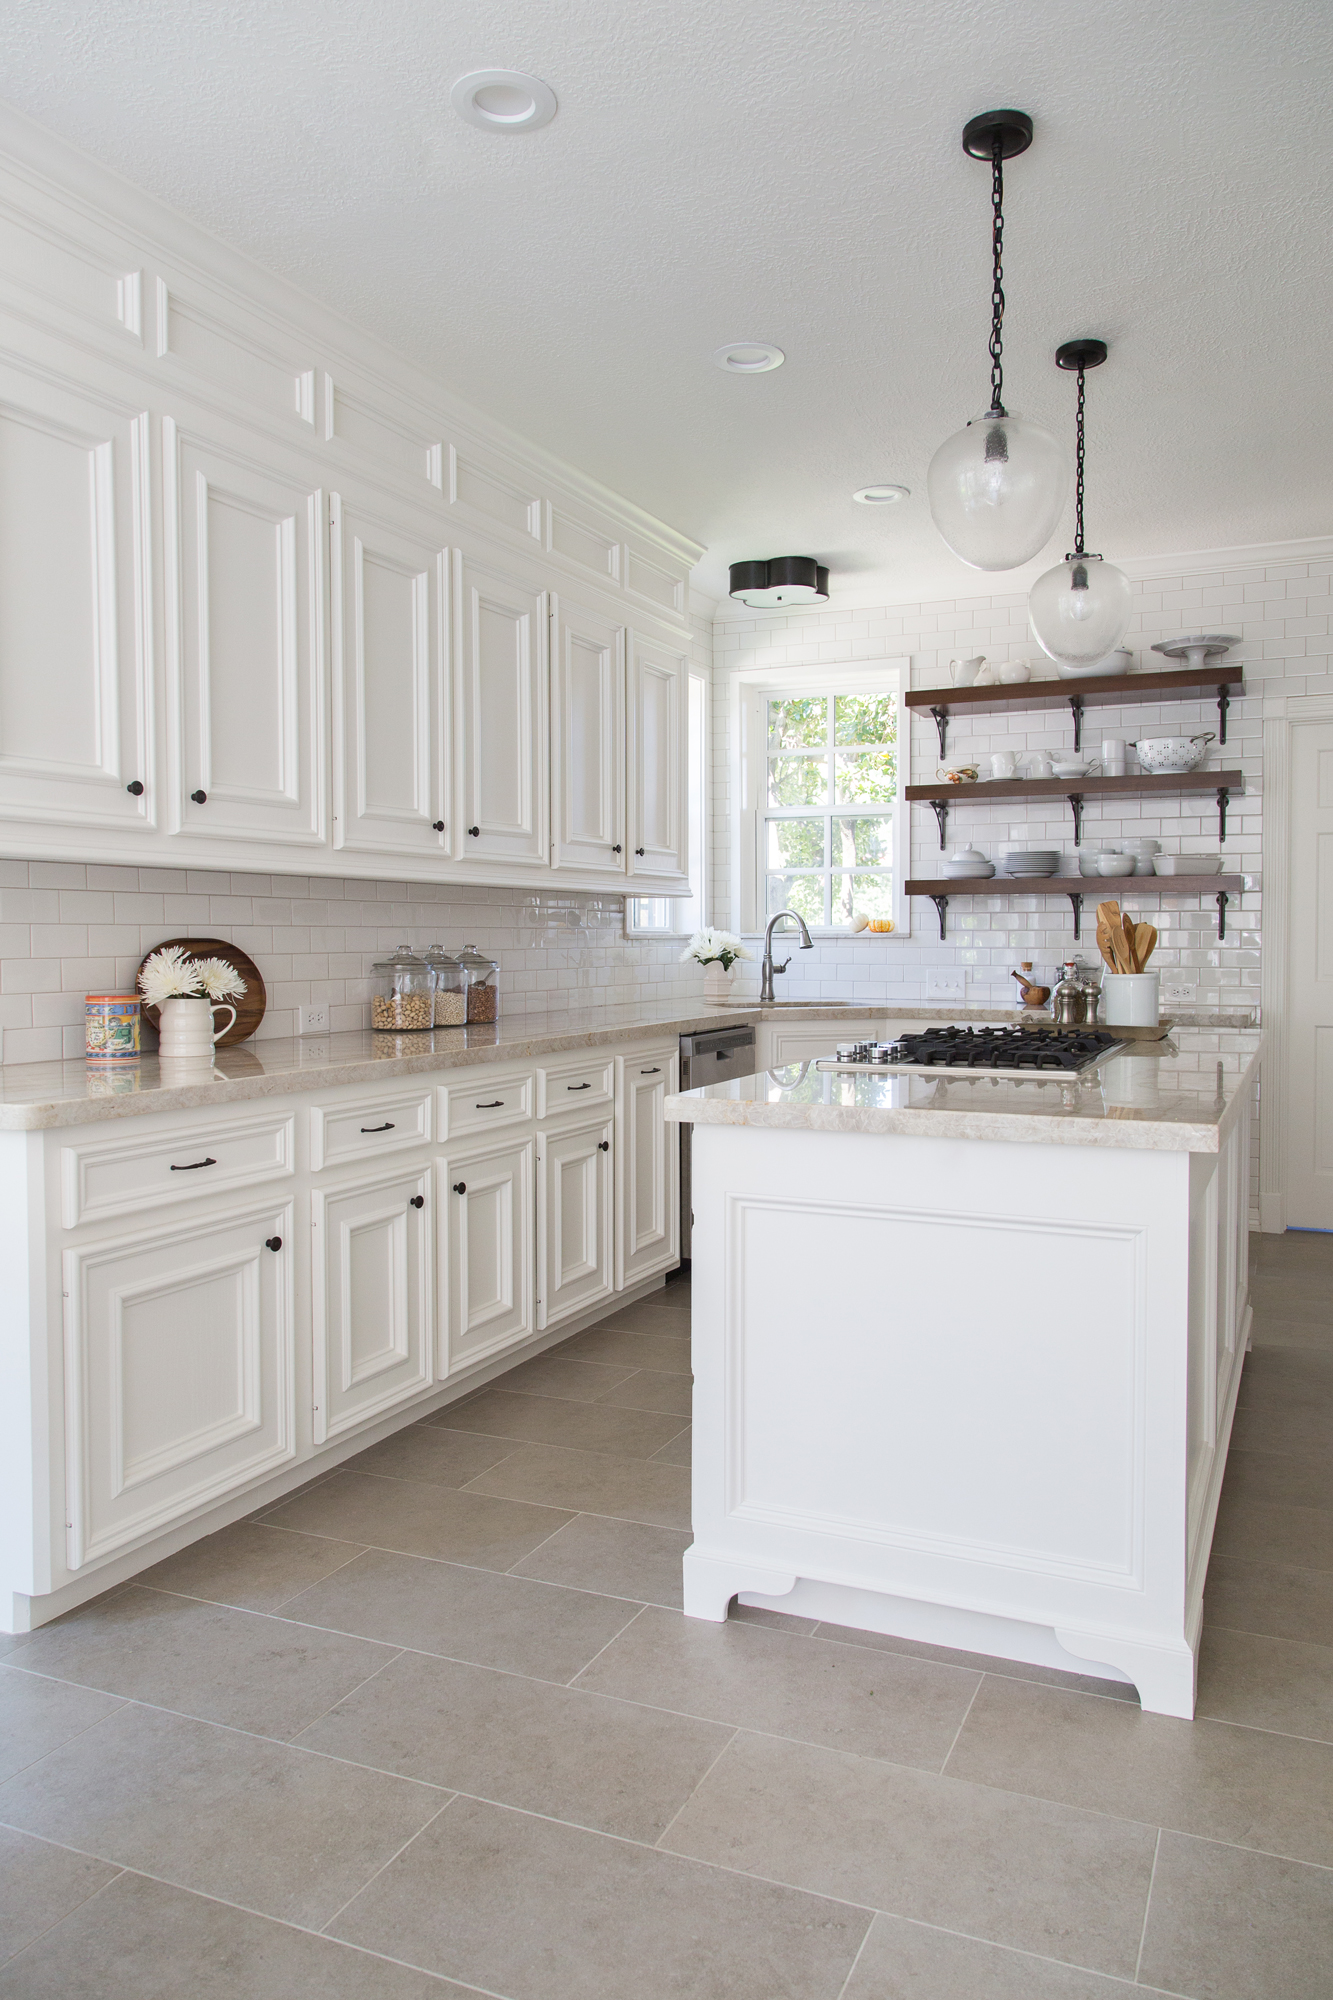 AFTER - Kitchen remodel with new longer island. Downdraft cooktop remained on the island. Designer: Carla Aston, Photographer: Tori Aston | Read more about  this project at this link